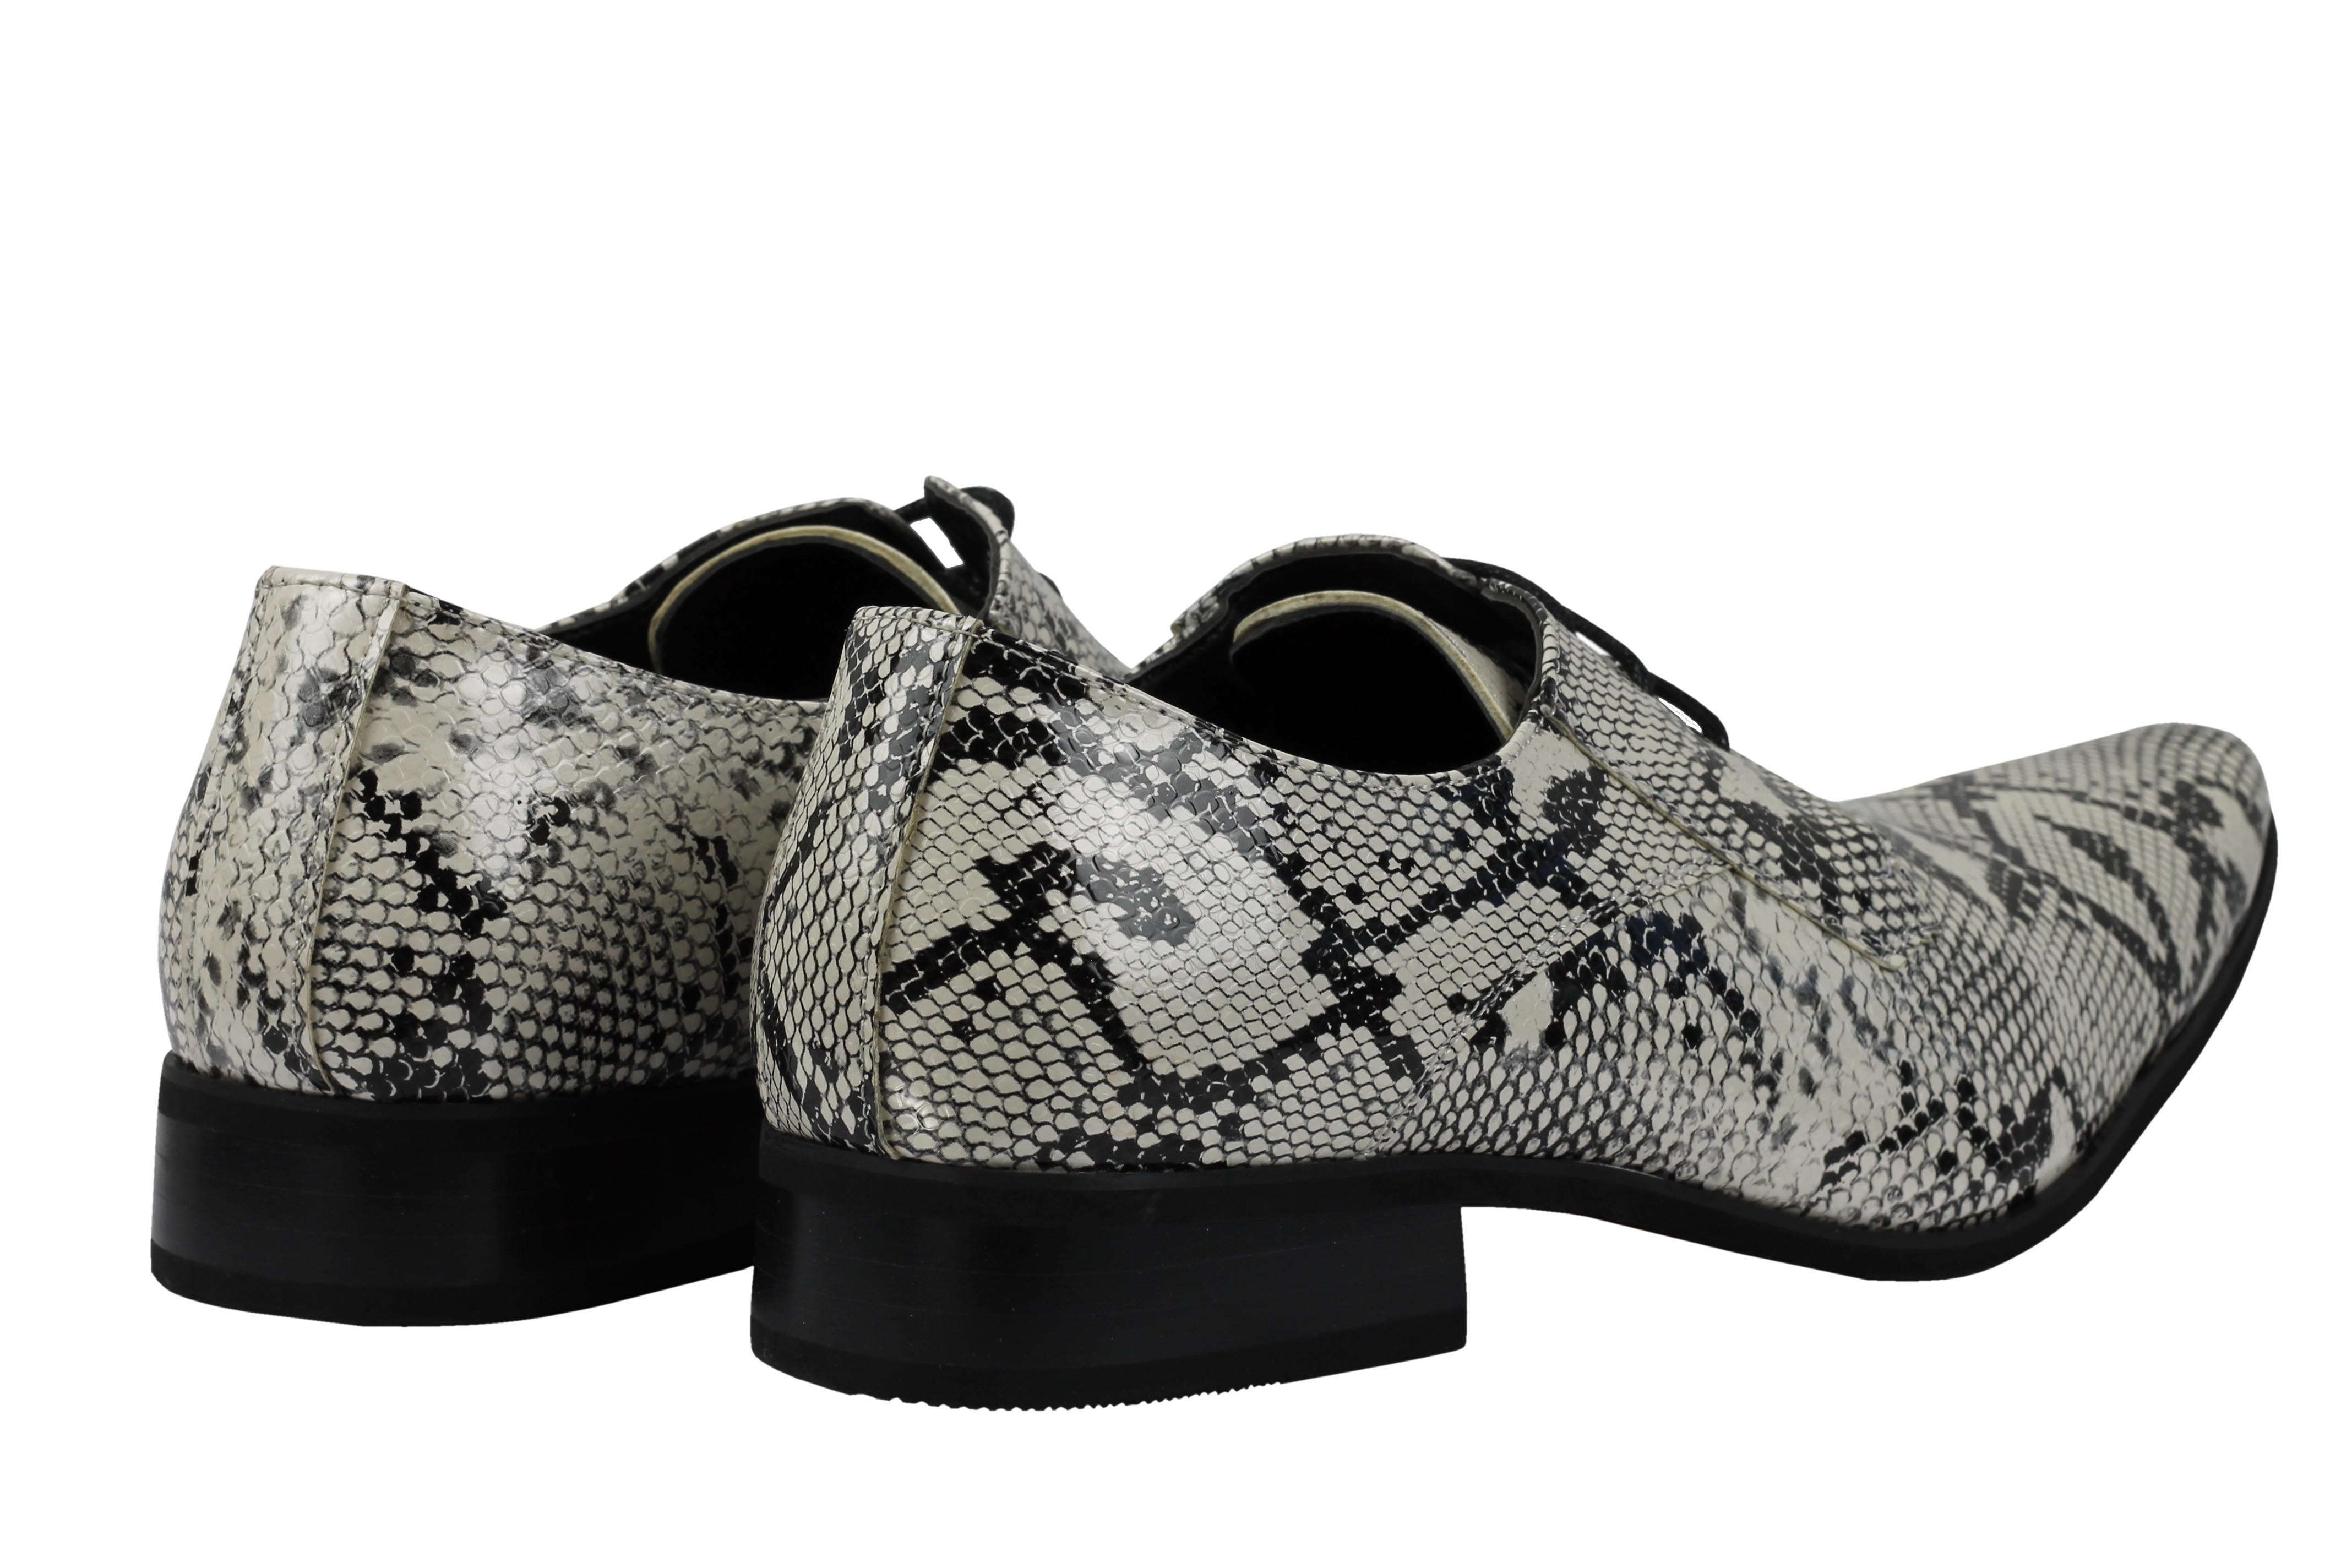 Mens-Leather-Lined-Snake-Skin-Print-Shiny-Patent-Leather-Smart-Party-Retro-Shoes thumbnail 28